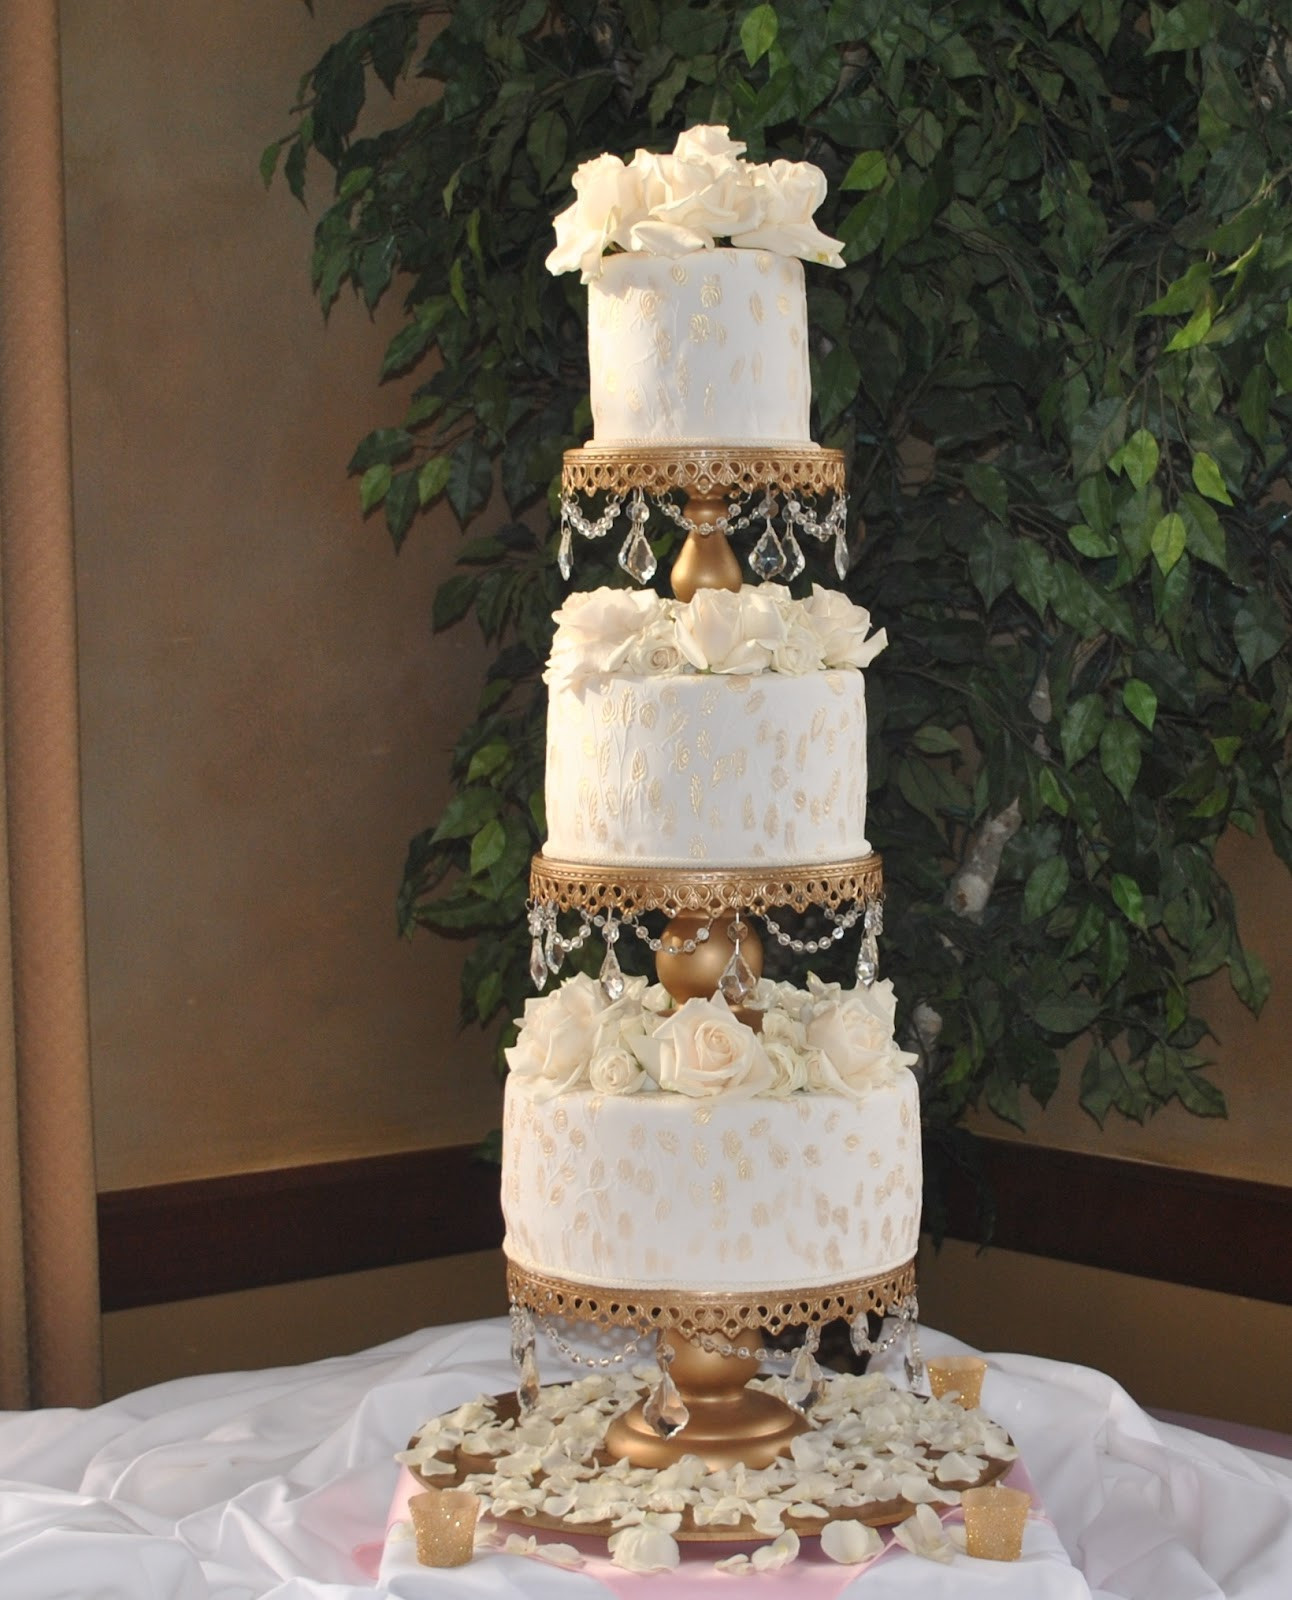 Wedding Cakes Style  The Cake Zone Theme Wedding Cake Ideas for 2012